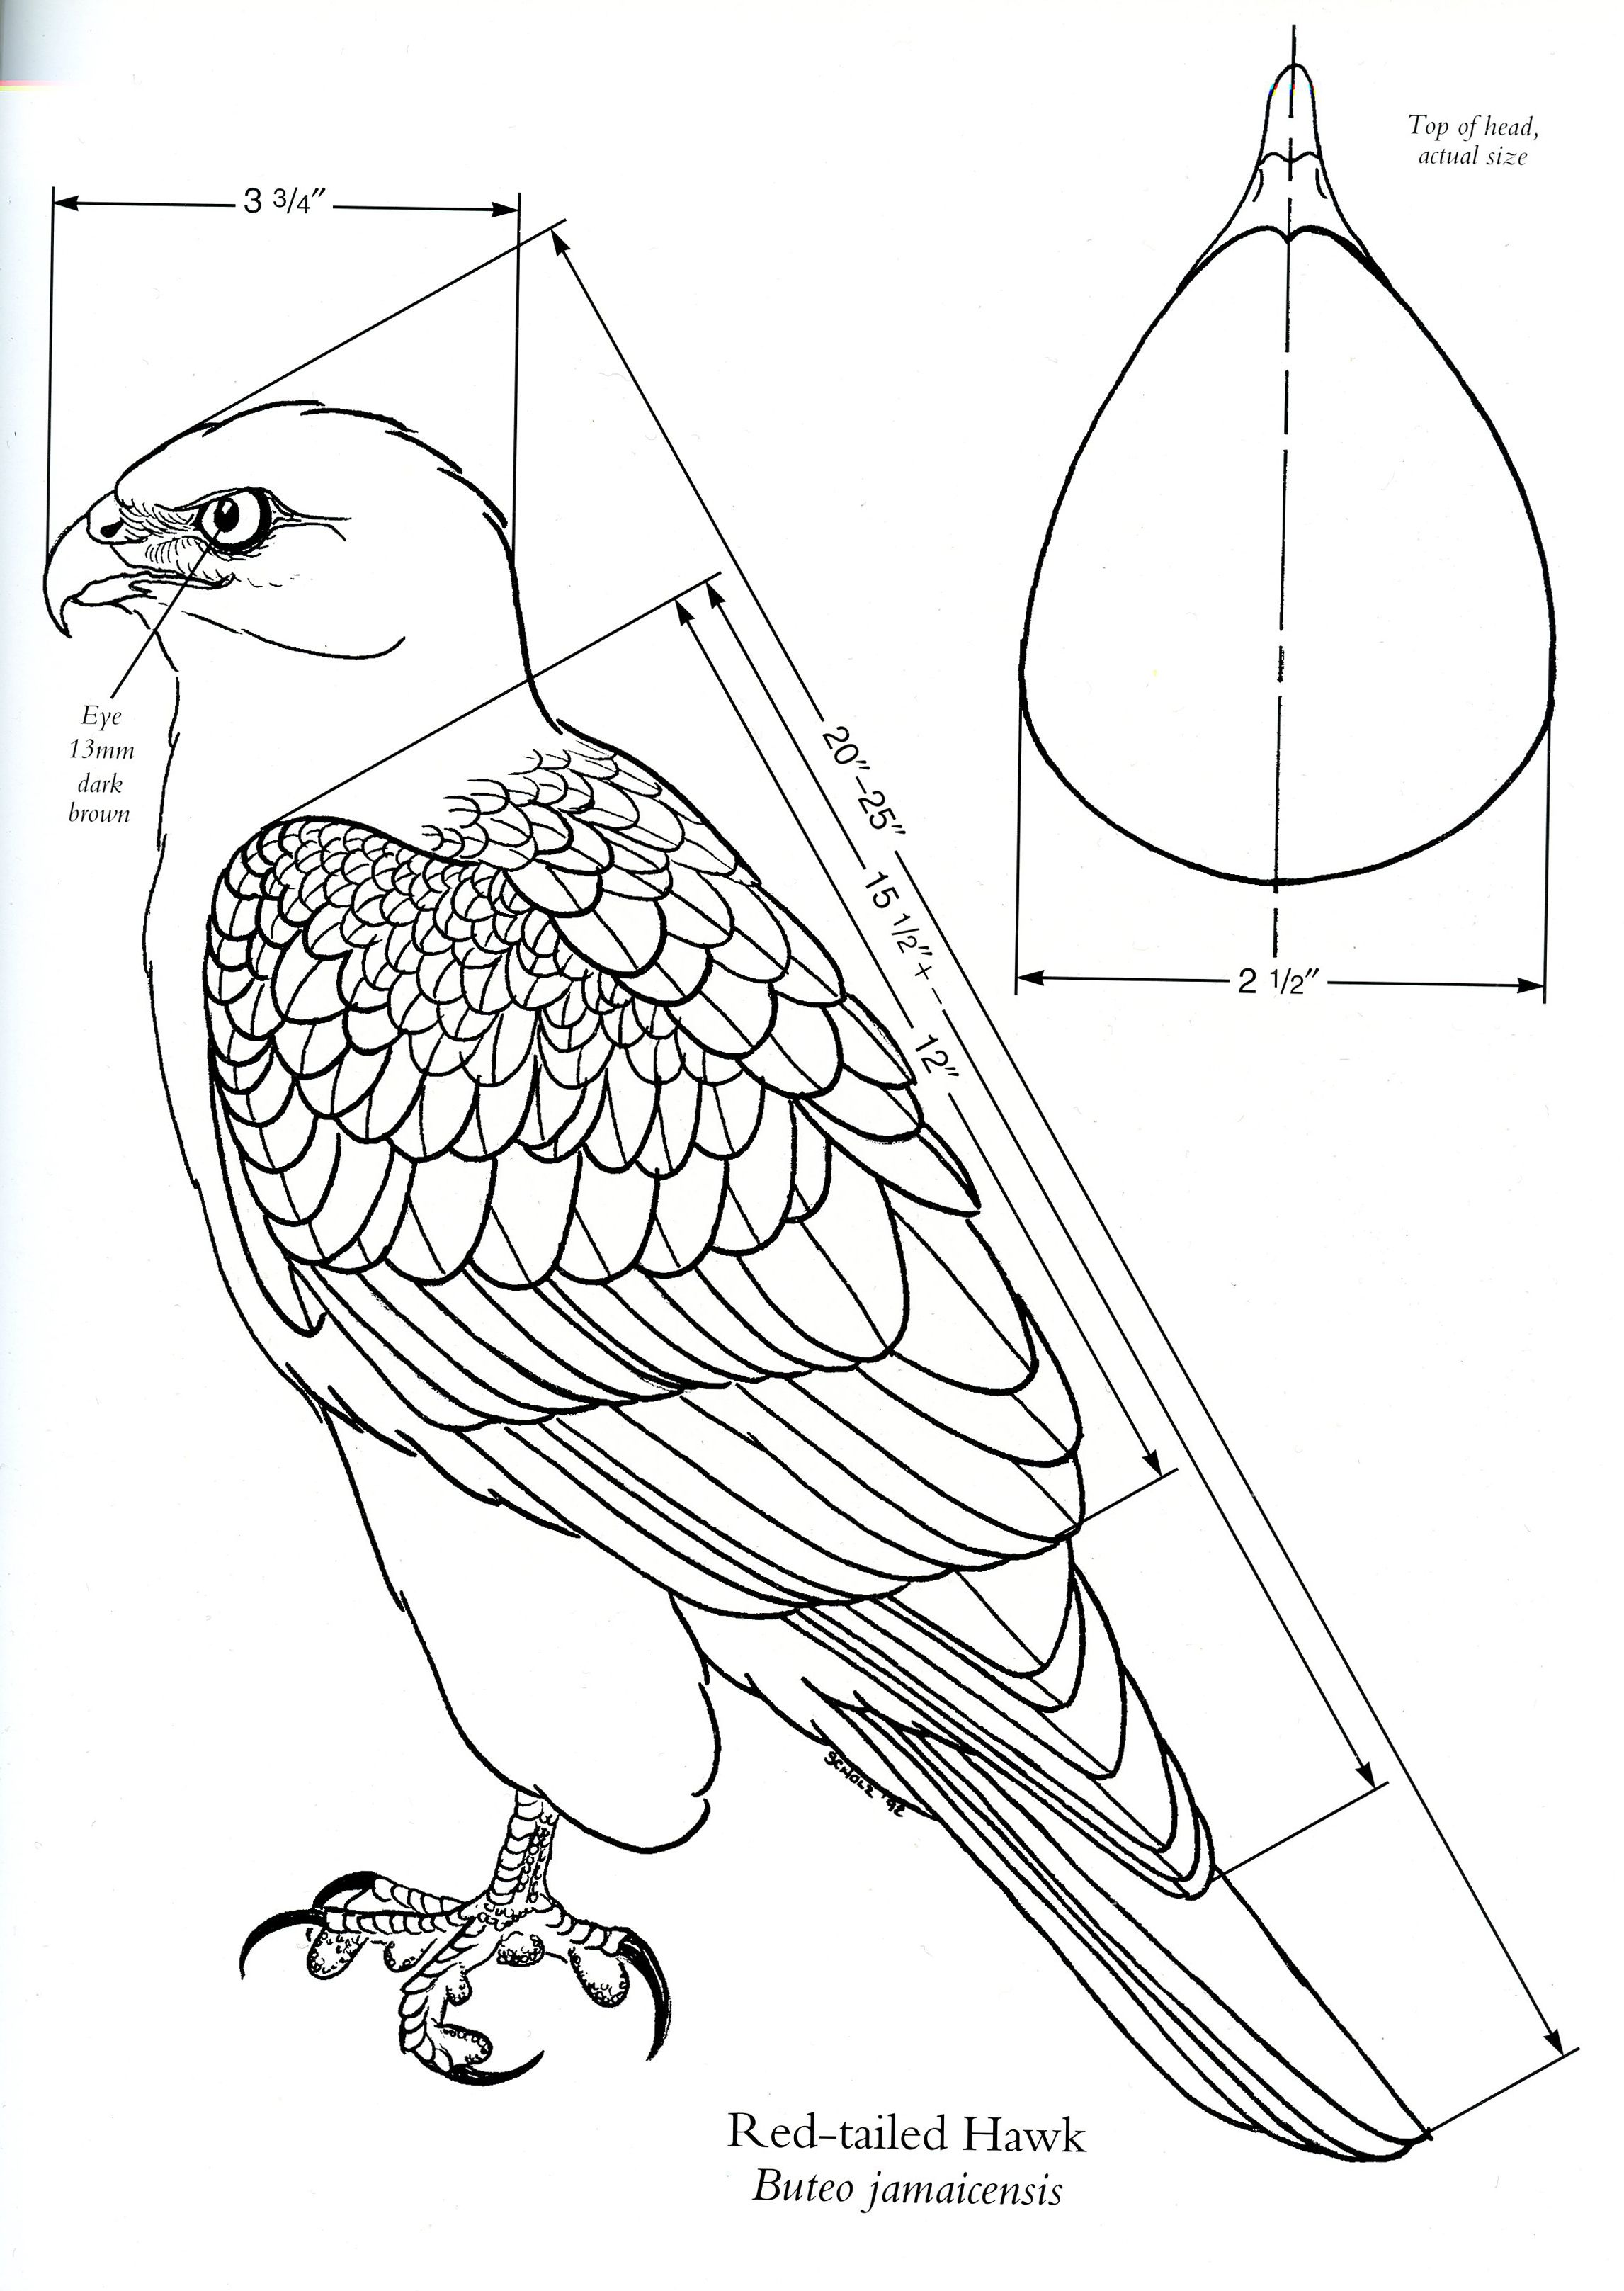 diagram of a red tailed hawk source birds of prey by floyd scholz diagram wild turkey diagram of hawk [ 2293 x 3234 Pixel ]